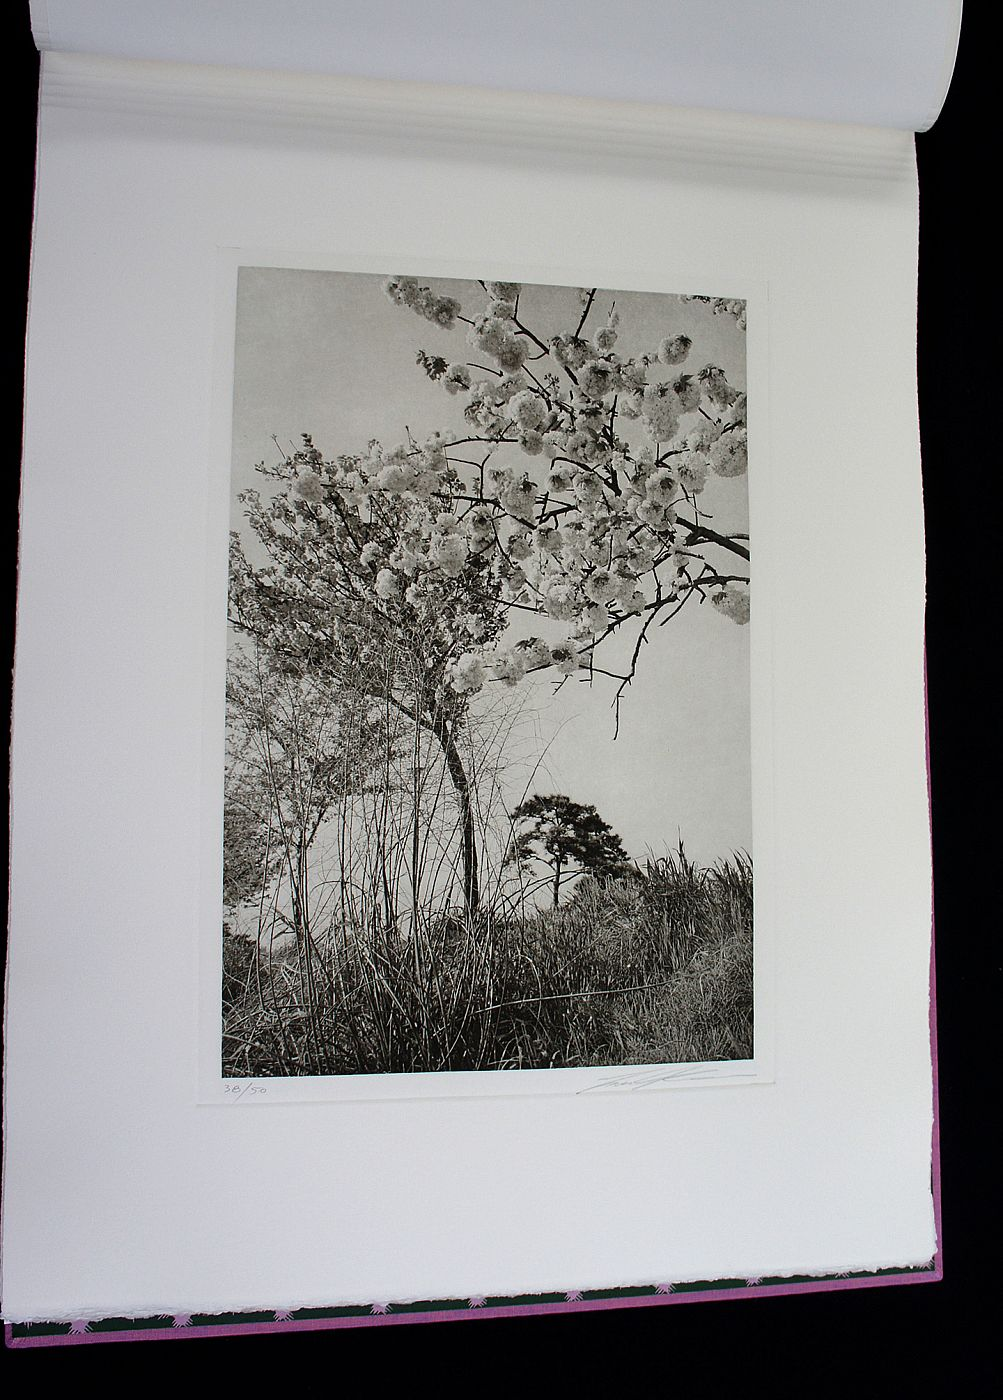 Lee Friedlander: Cherry Blossom Time in Japan (Special Limited Edition Book of 25 Photogravure Prints)